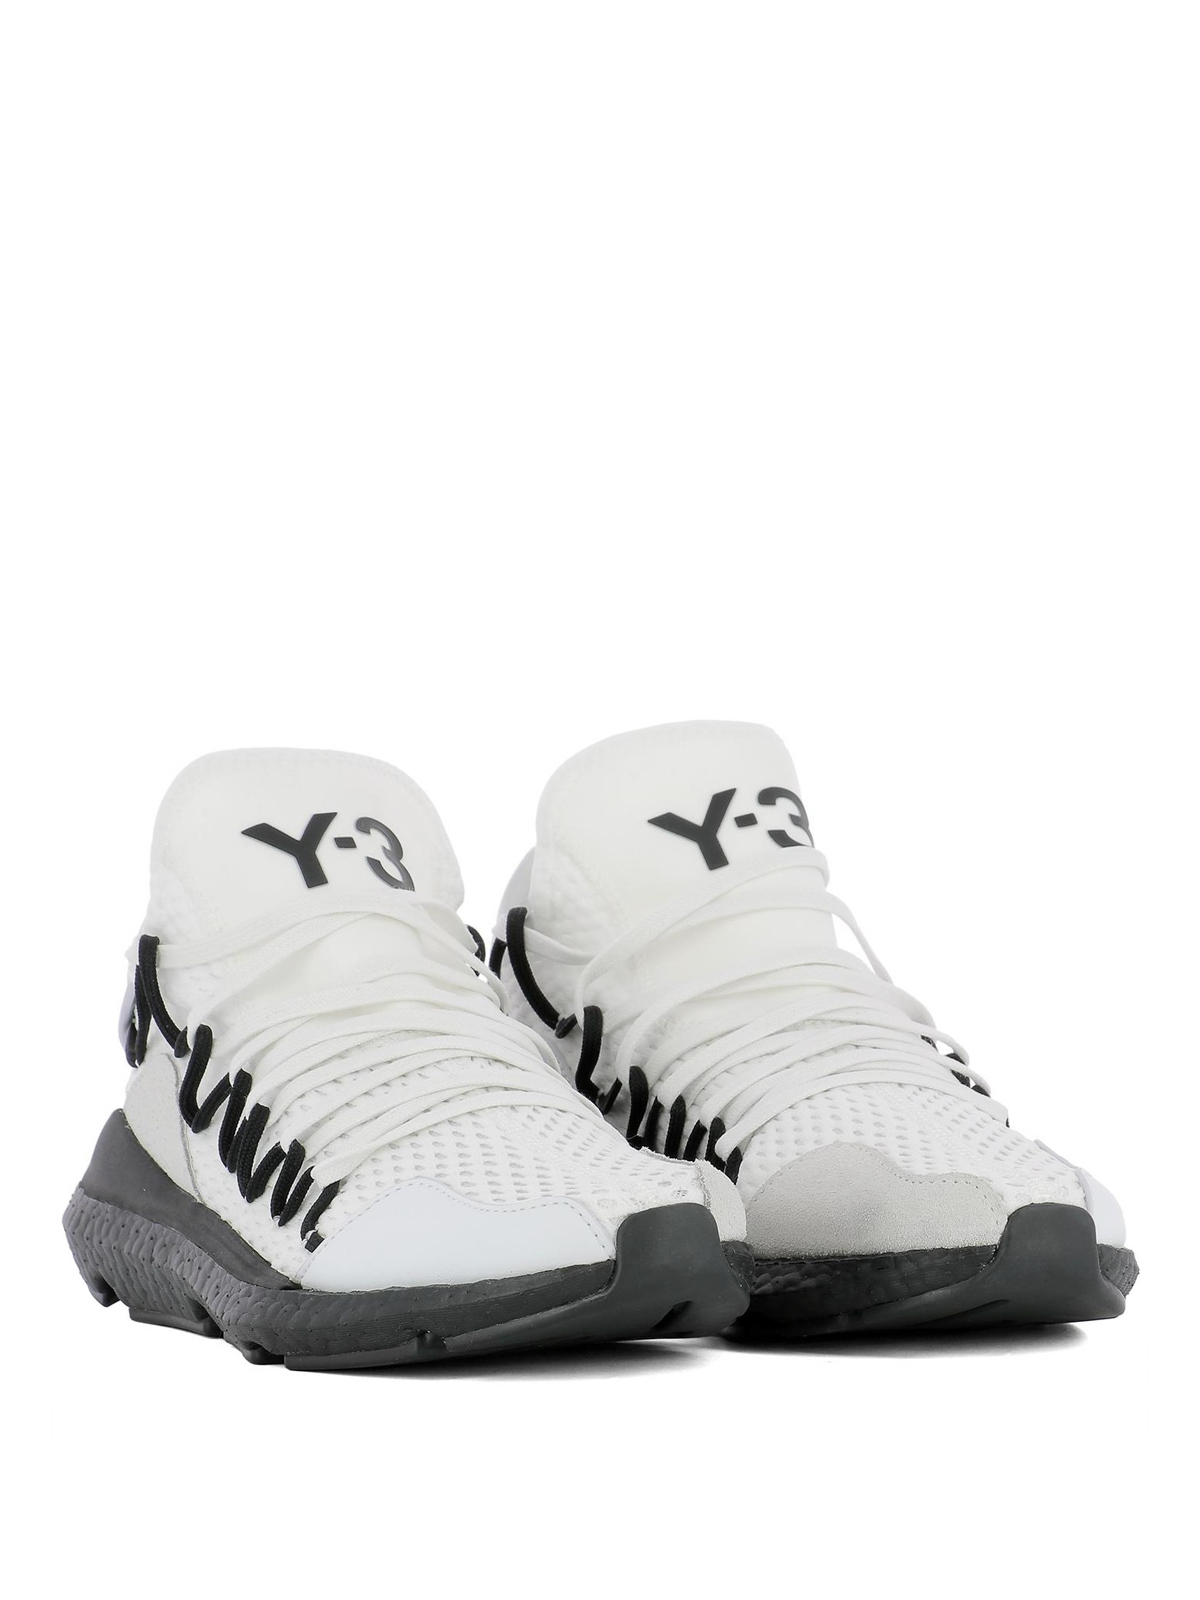 online store e8550 21d42 ADIDAS Y-3  trainers online - Kusari white sneakers